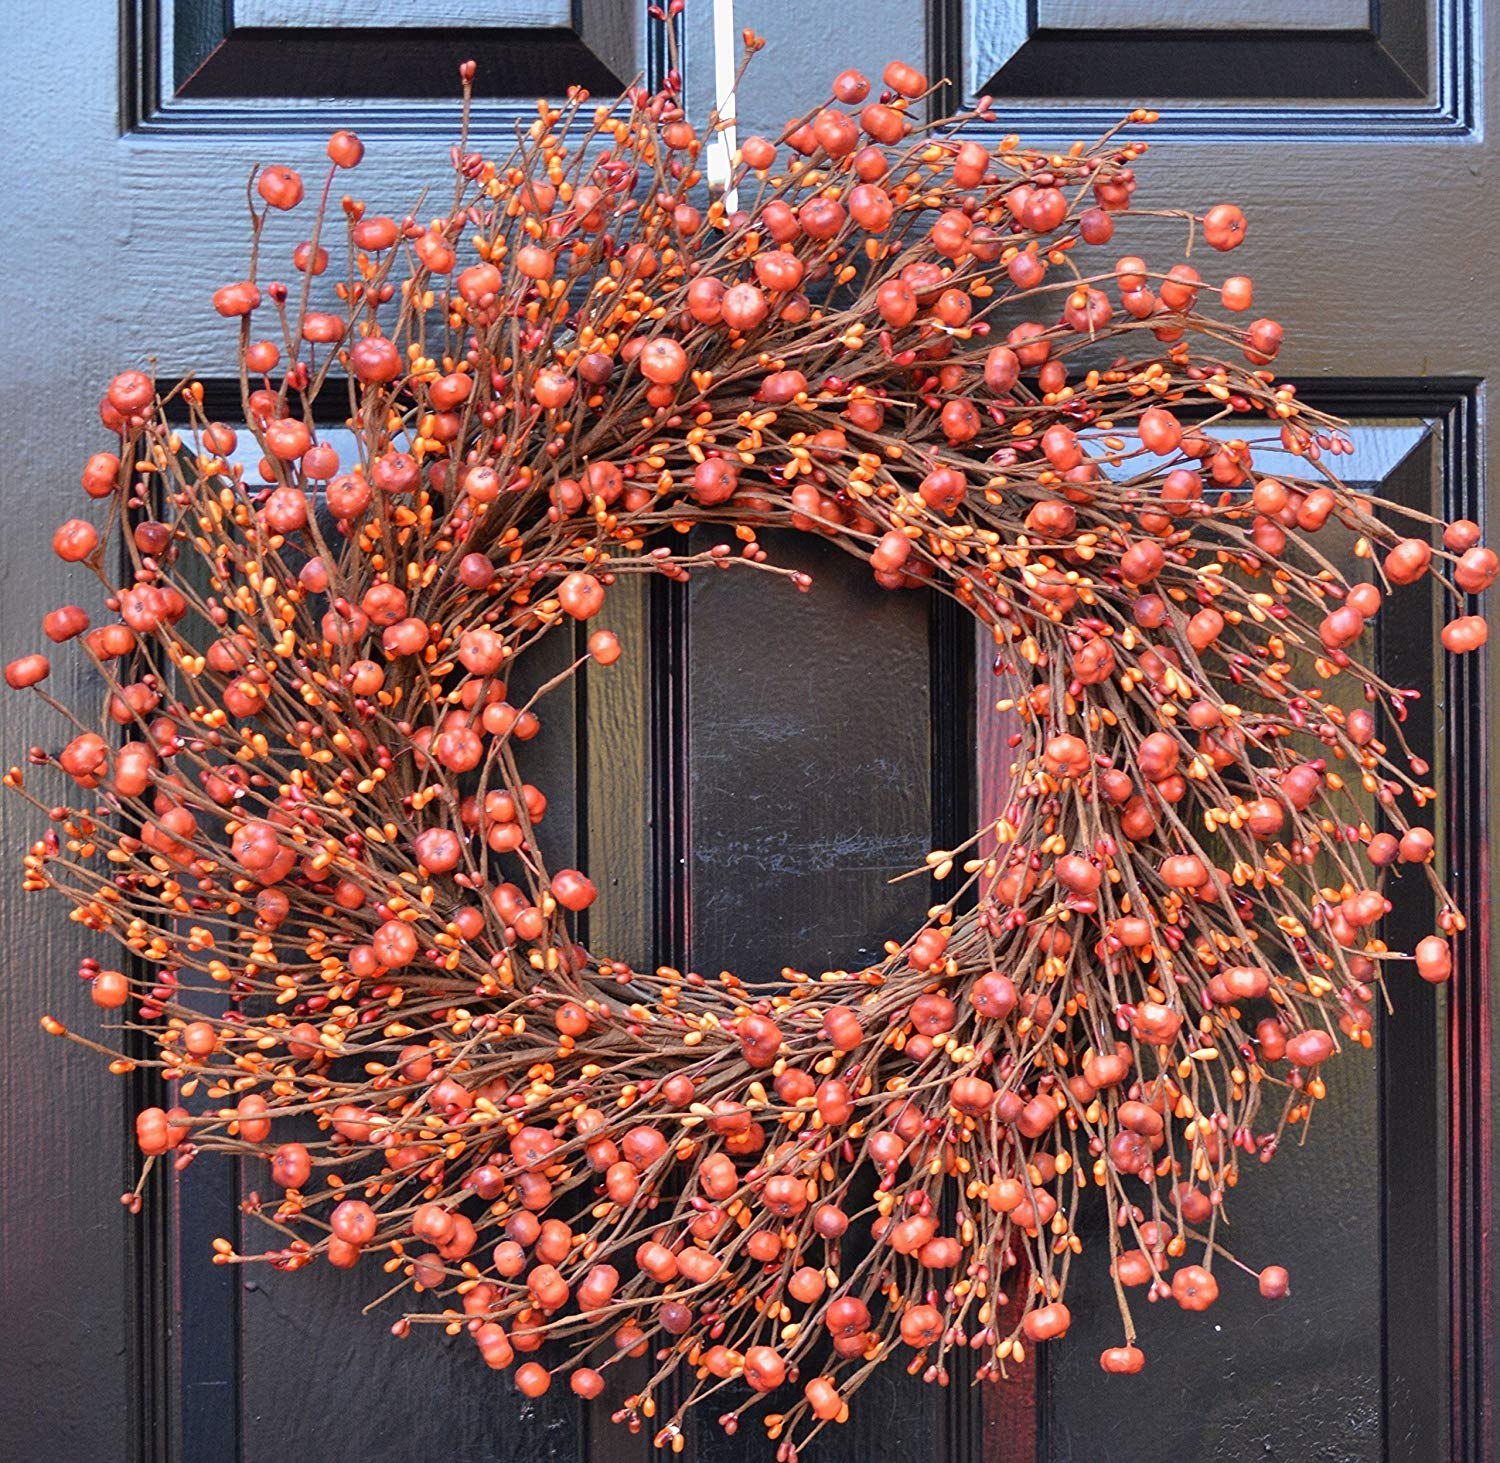 Elegant Holidays Handmade Fall Pumpkin Berry Wreath, Decorative Front Door to Welcome Guests-for Outdoor or Indoor Home Wall Accent Décor- Great for Autumn, Thanksgiving and Halloween- 16-24 inches